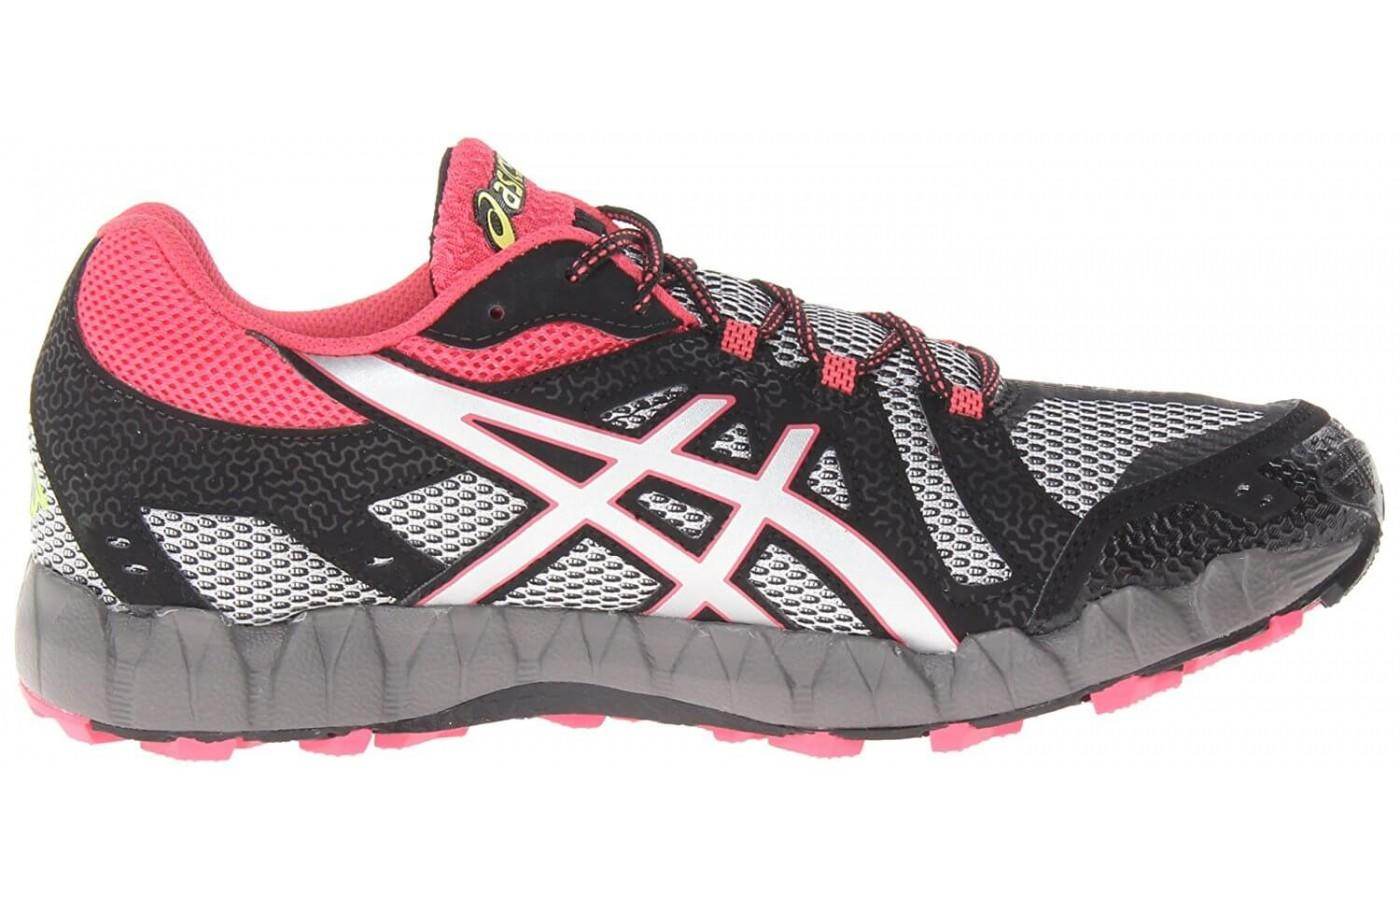 the Asics Gel FujiTrainer 3 has an anti-gravel tongue to keep debris out of the shoe